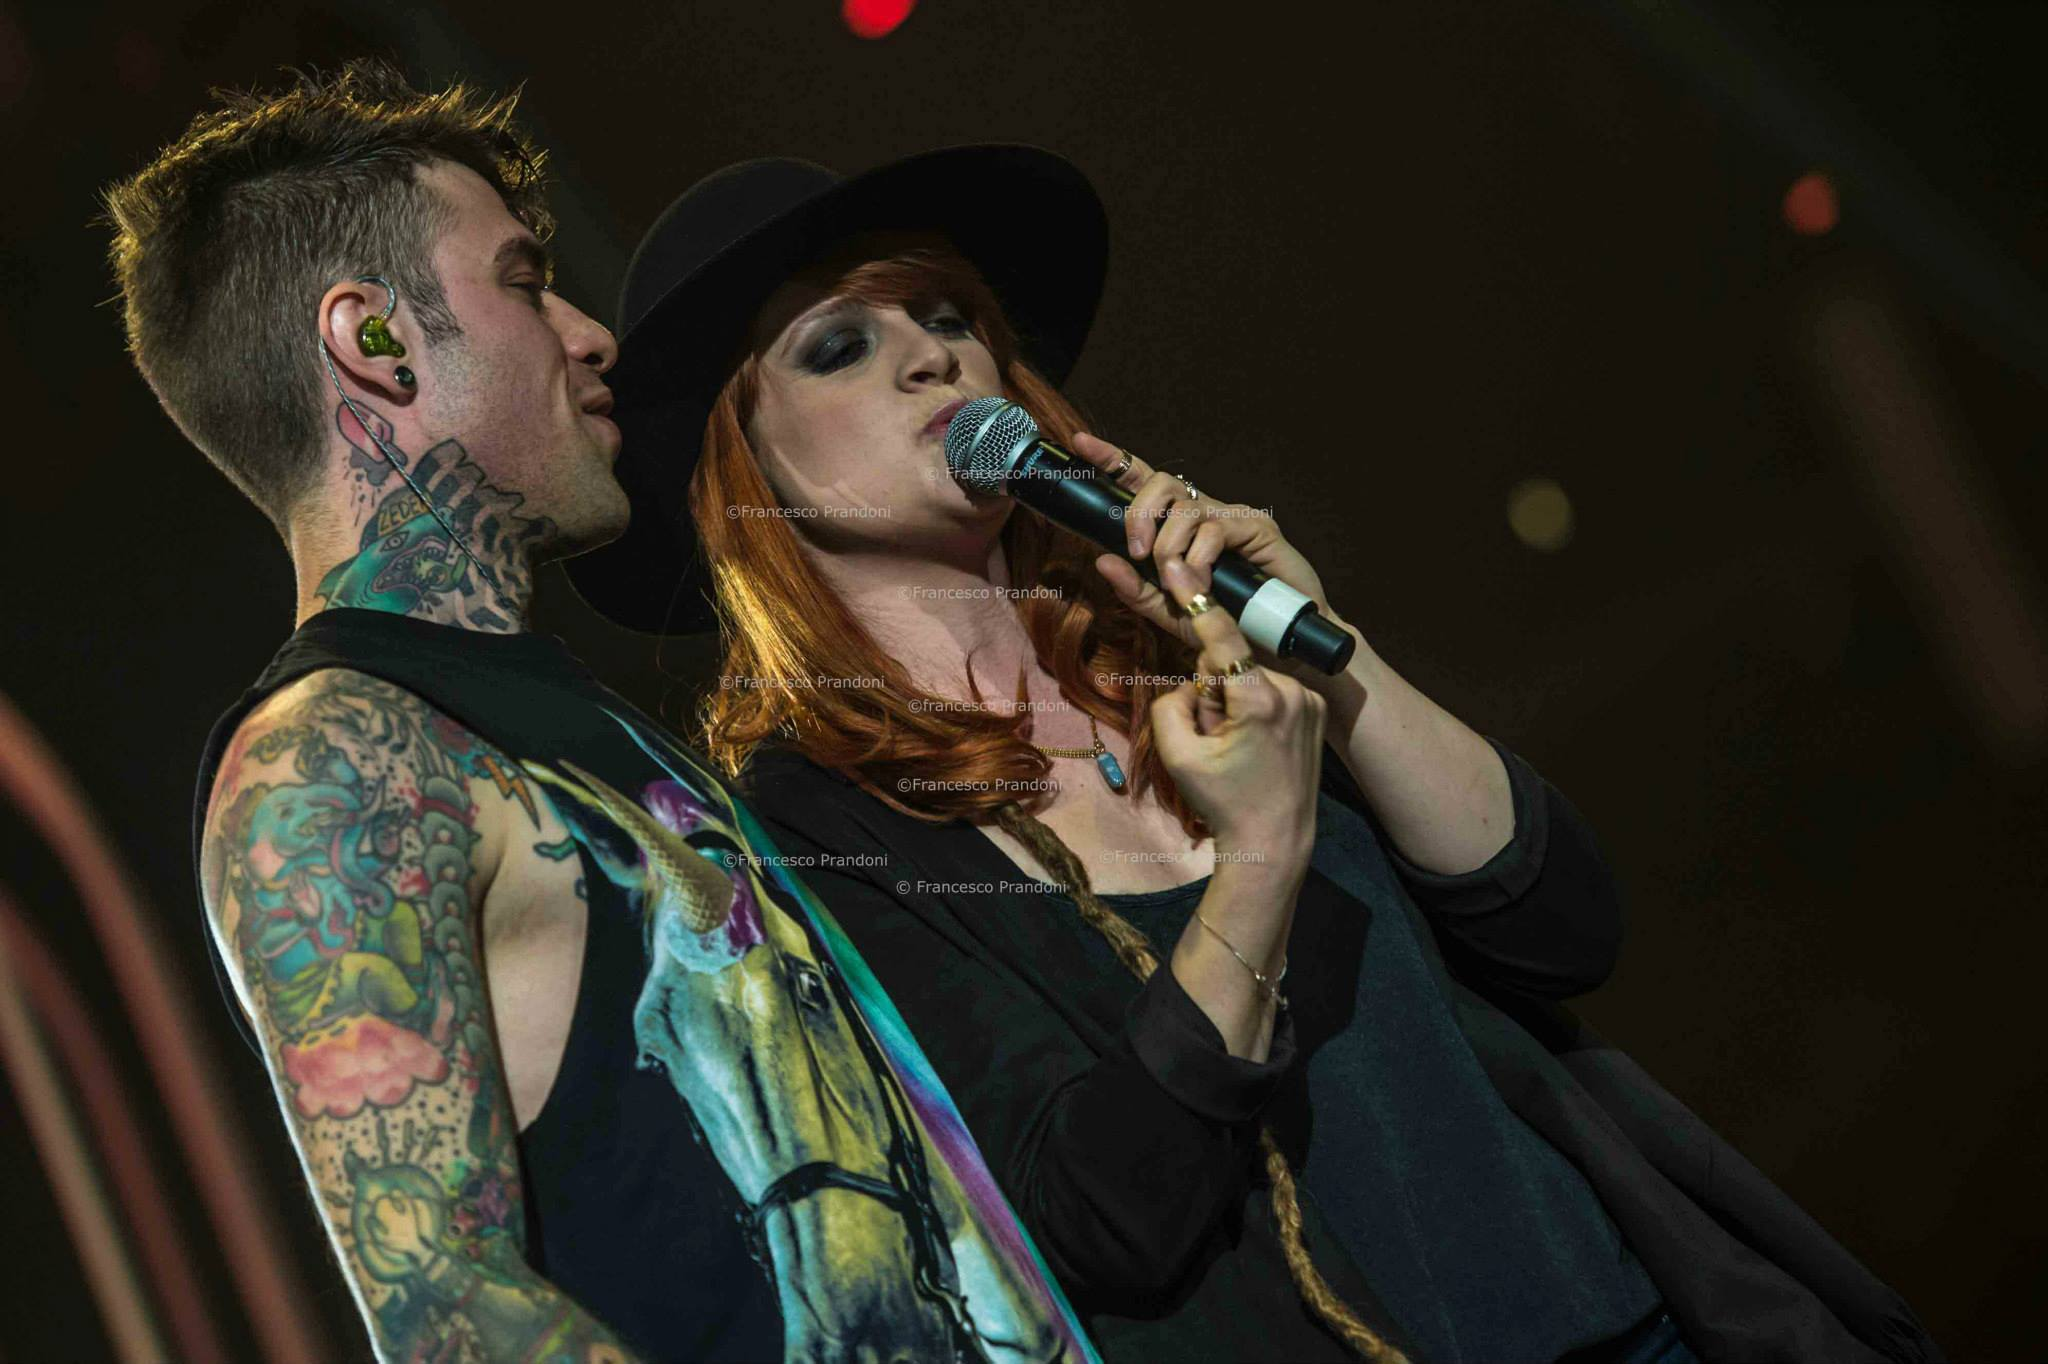 Fedez live @ Mediolanum Forum Assago feat. Noemi  ph Francesco Prandoni